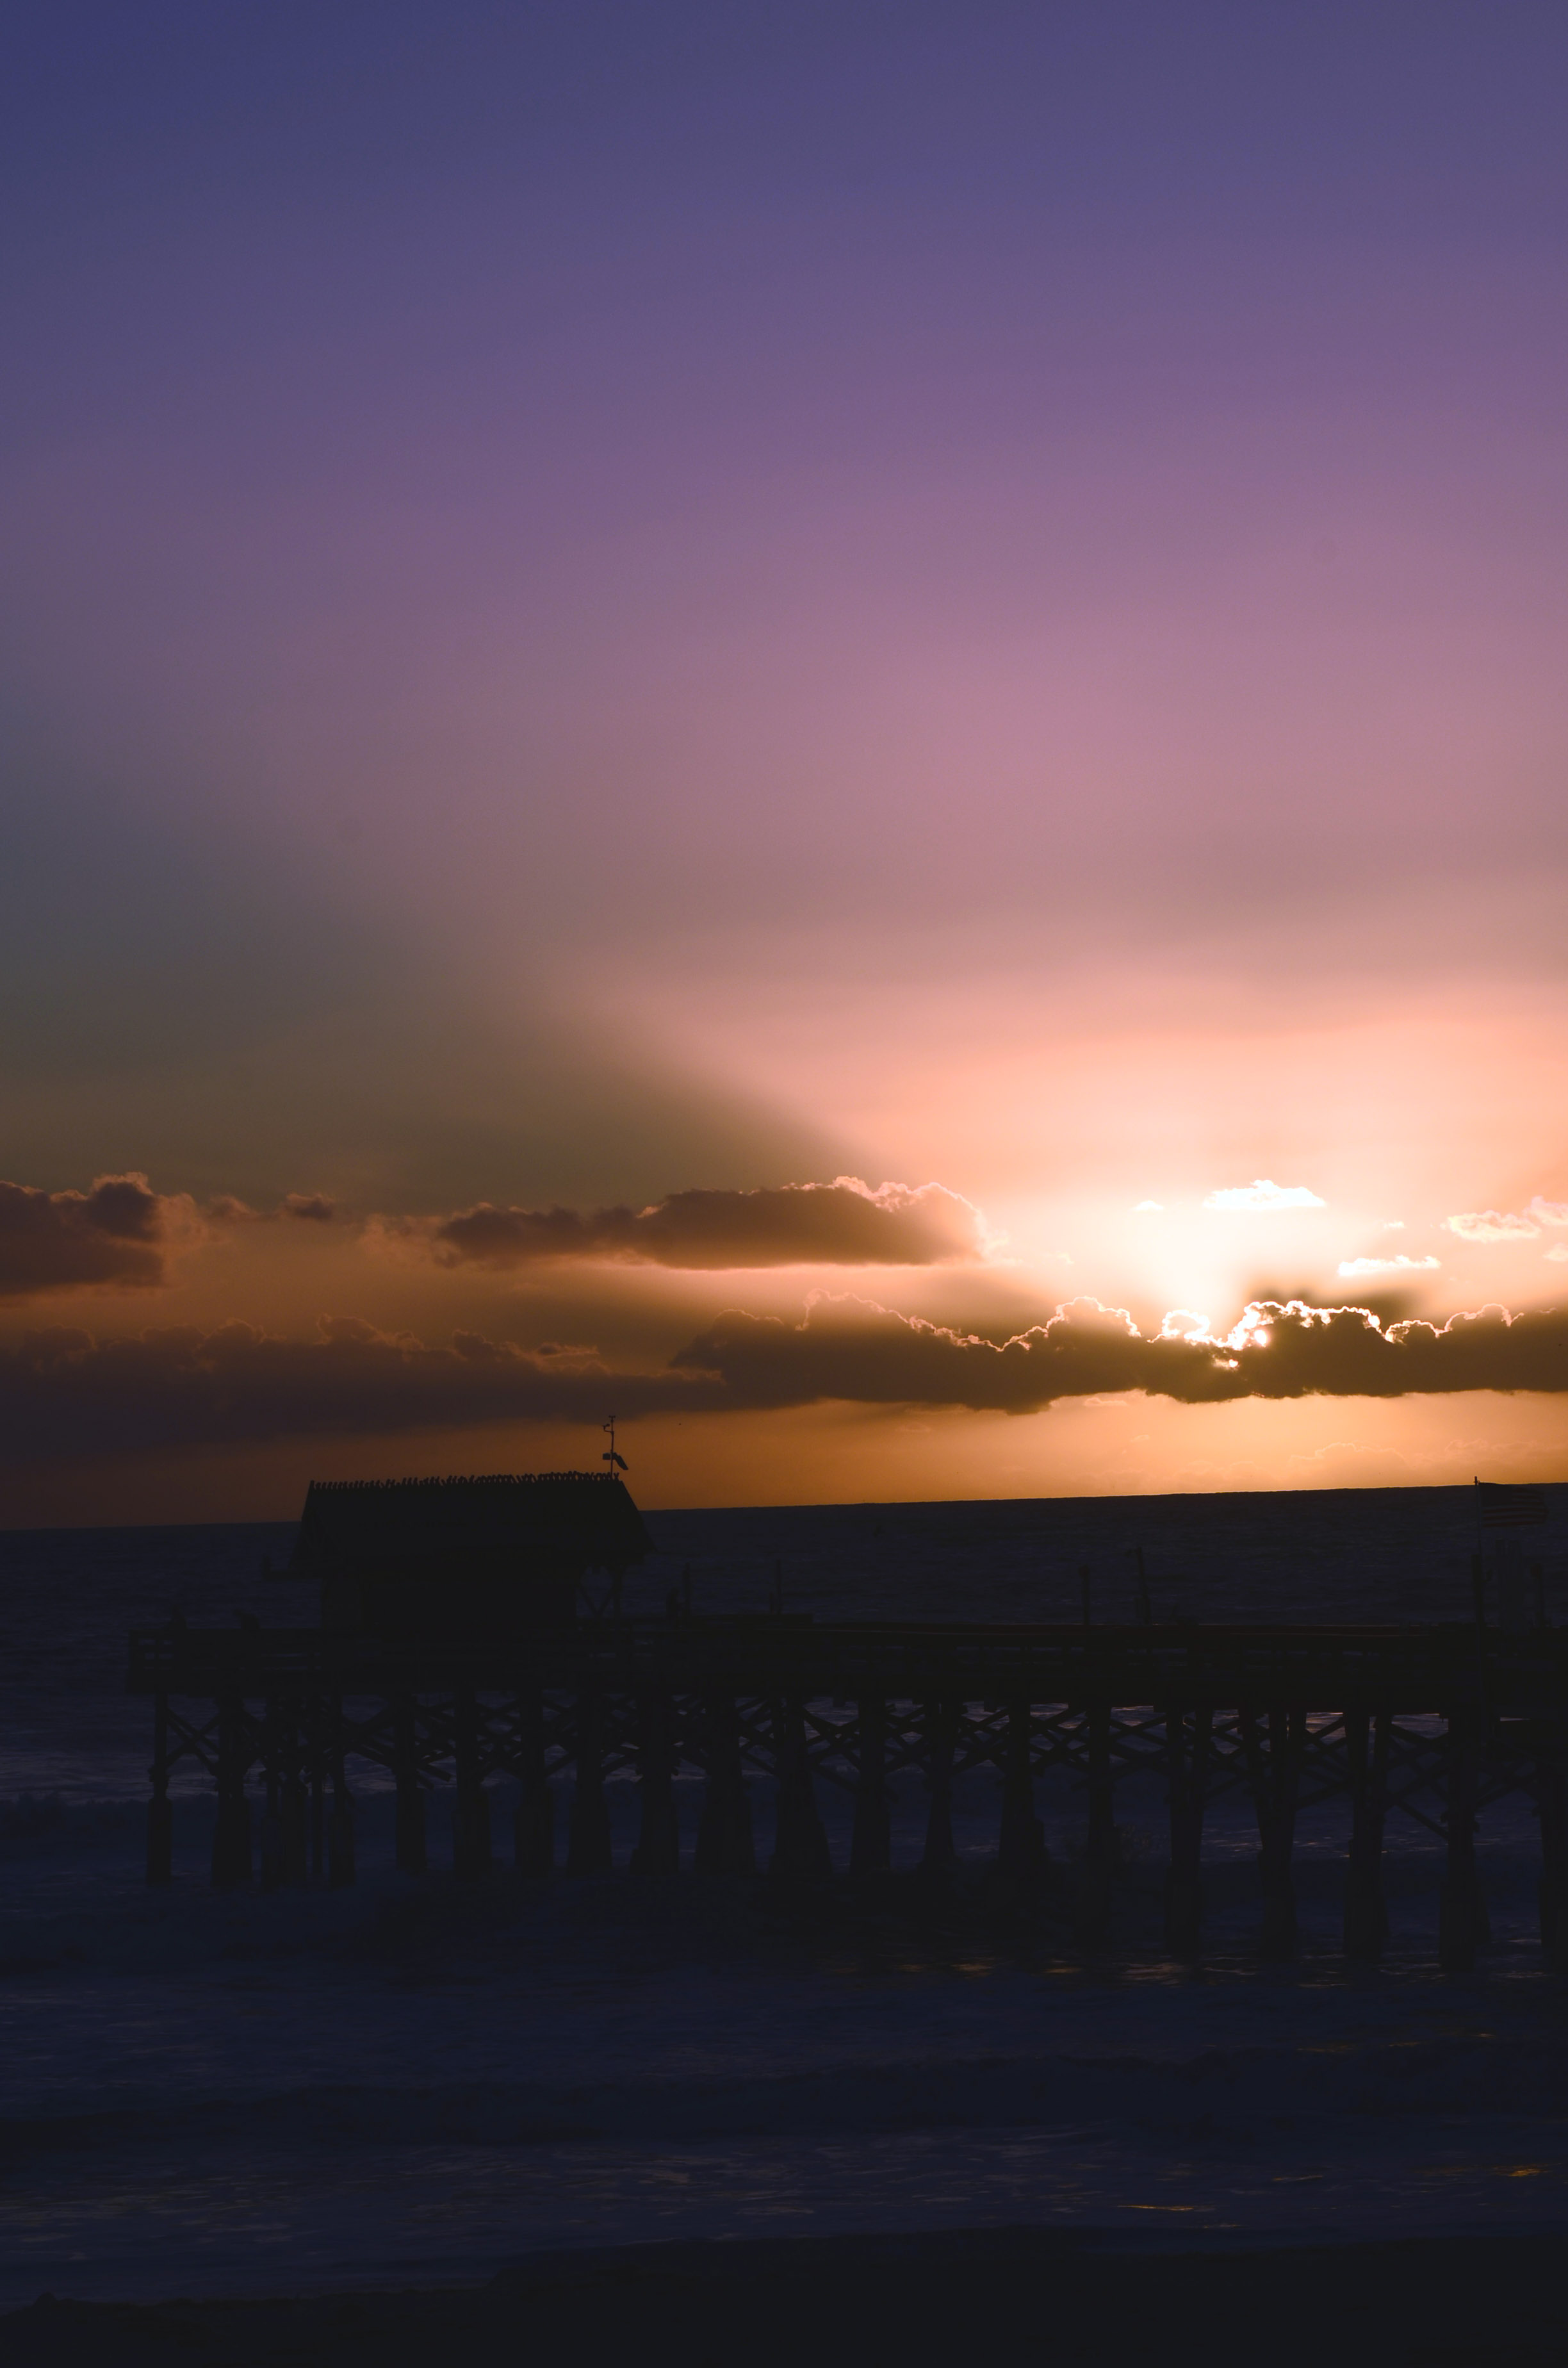 dawn 1 cocoa beach Florida, all rights reserved Ernest J. Bordini, Ph.D.